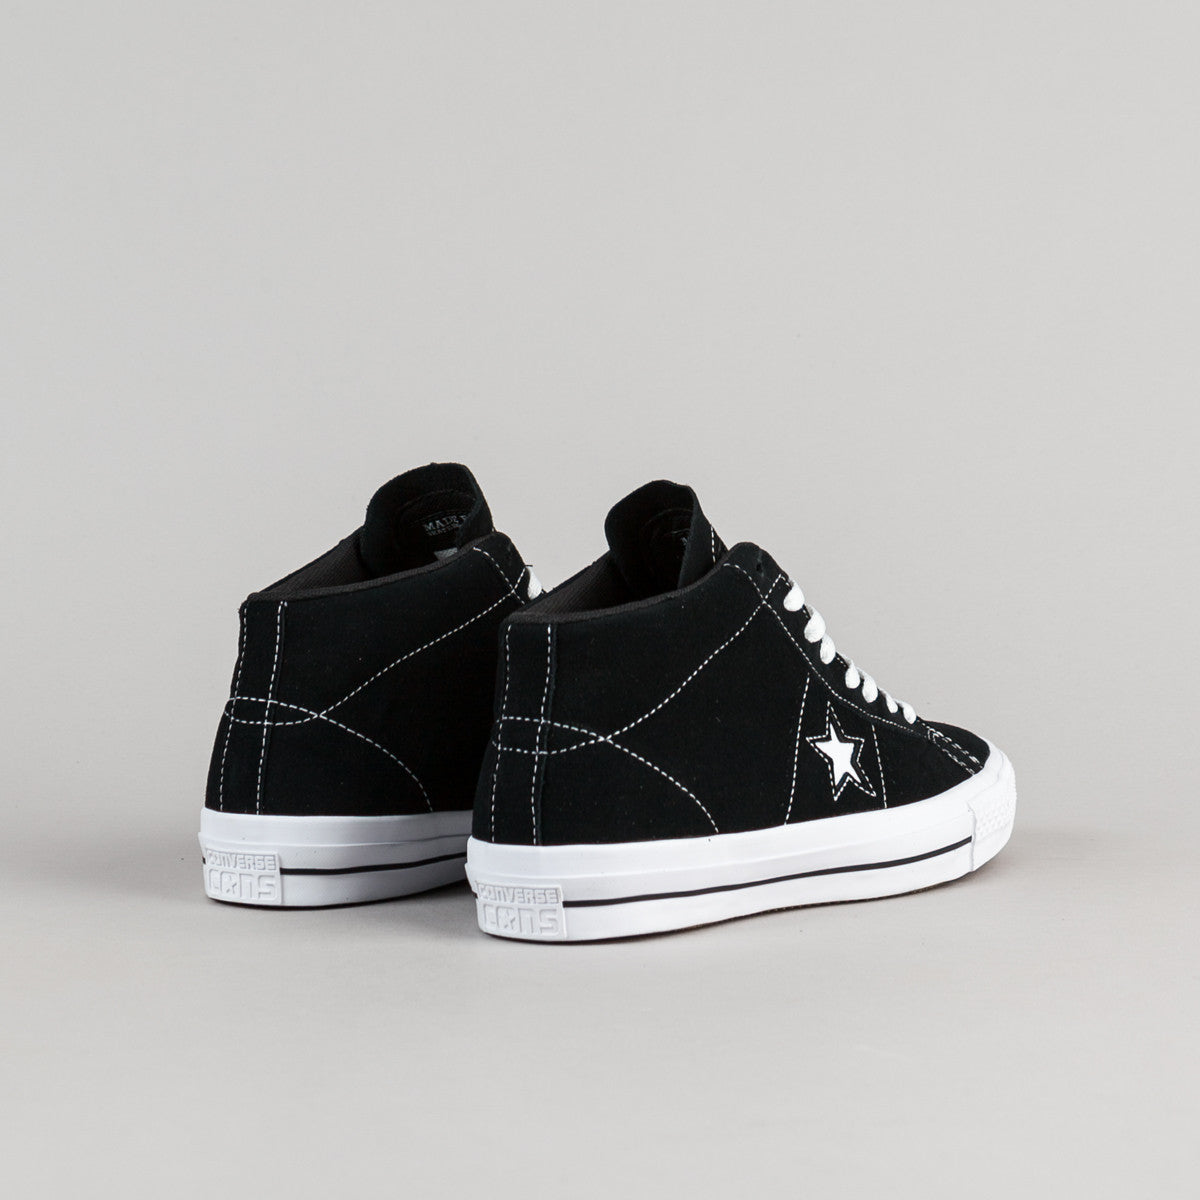 Converse One Star Pro Suede Mid Shoes - Black / White / Black